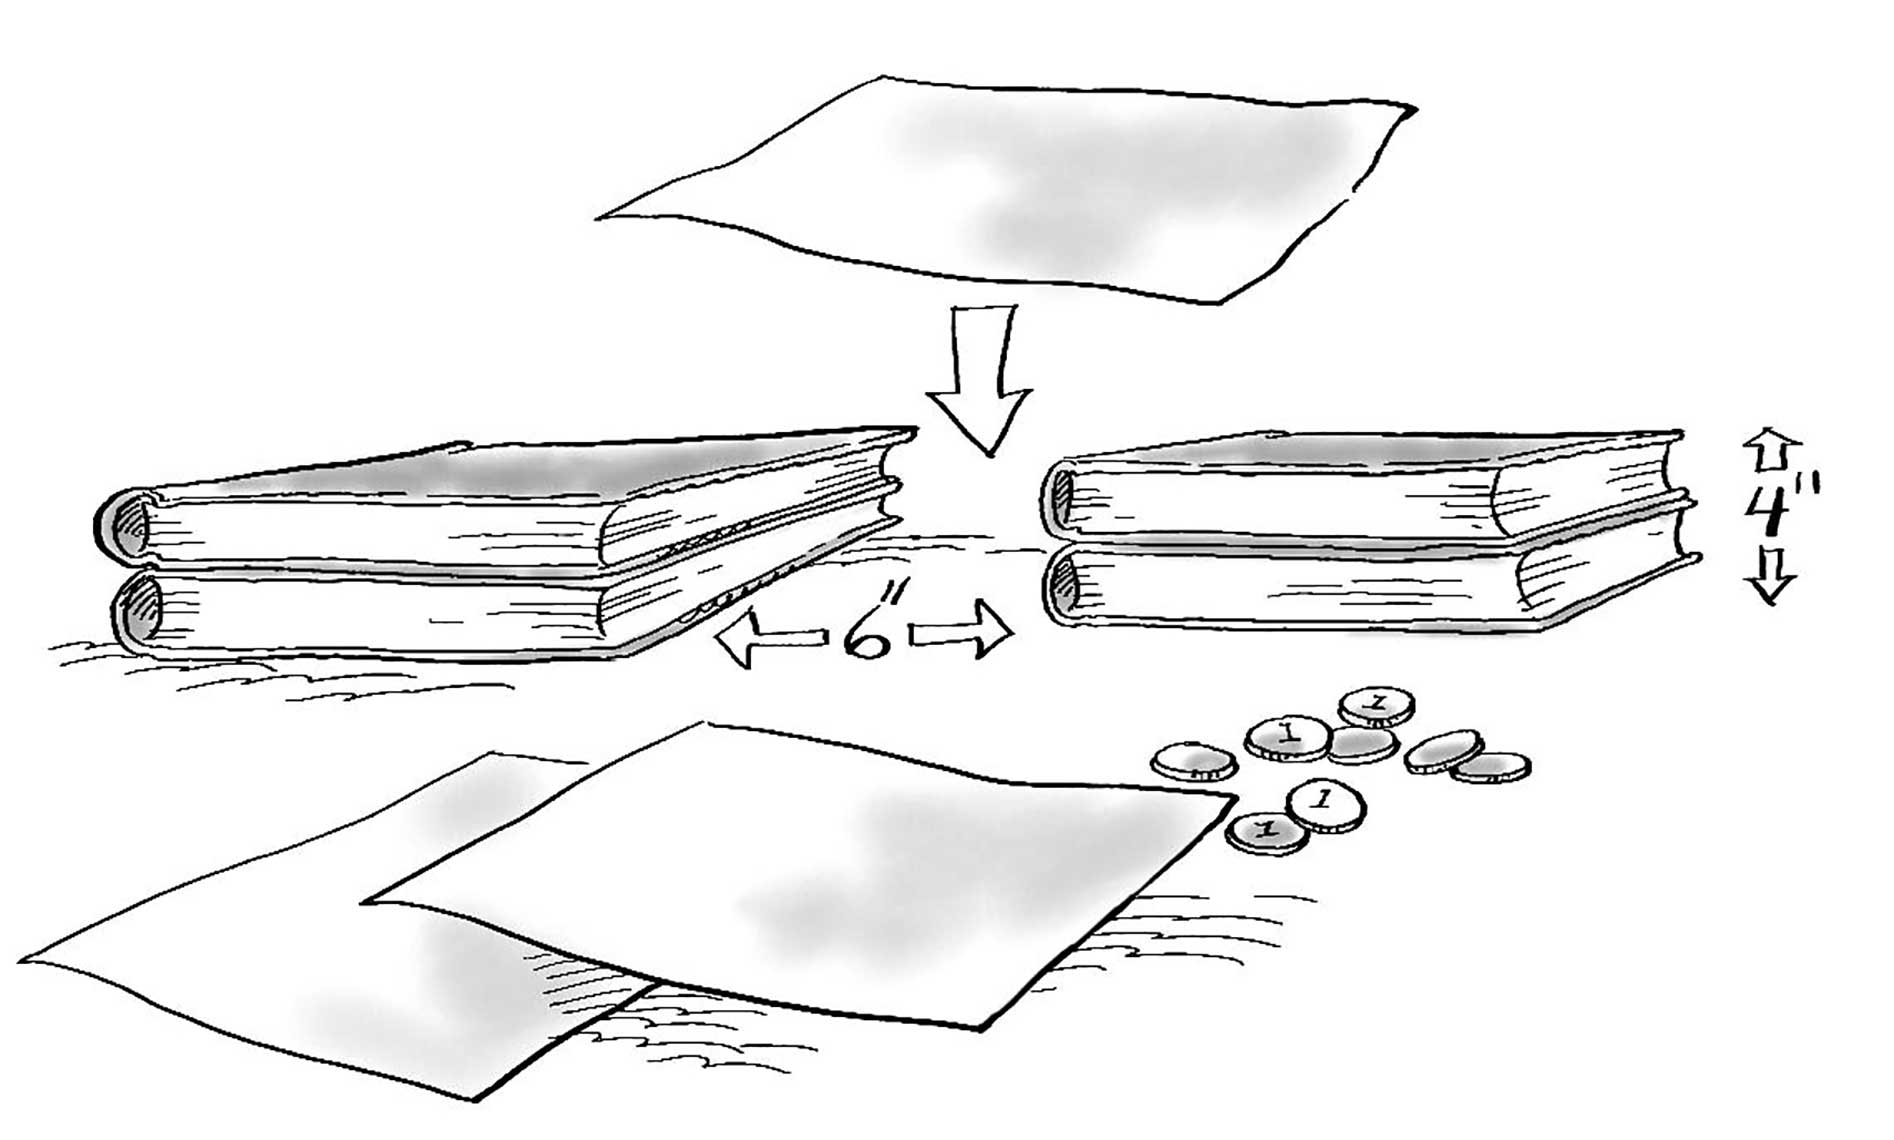 paper bridge with books design process illustration